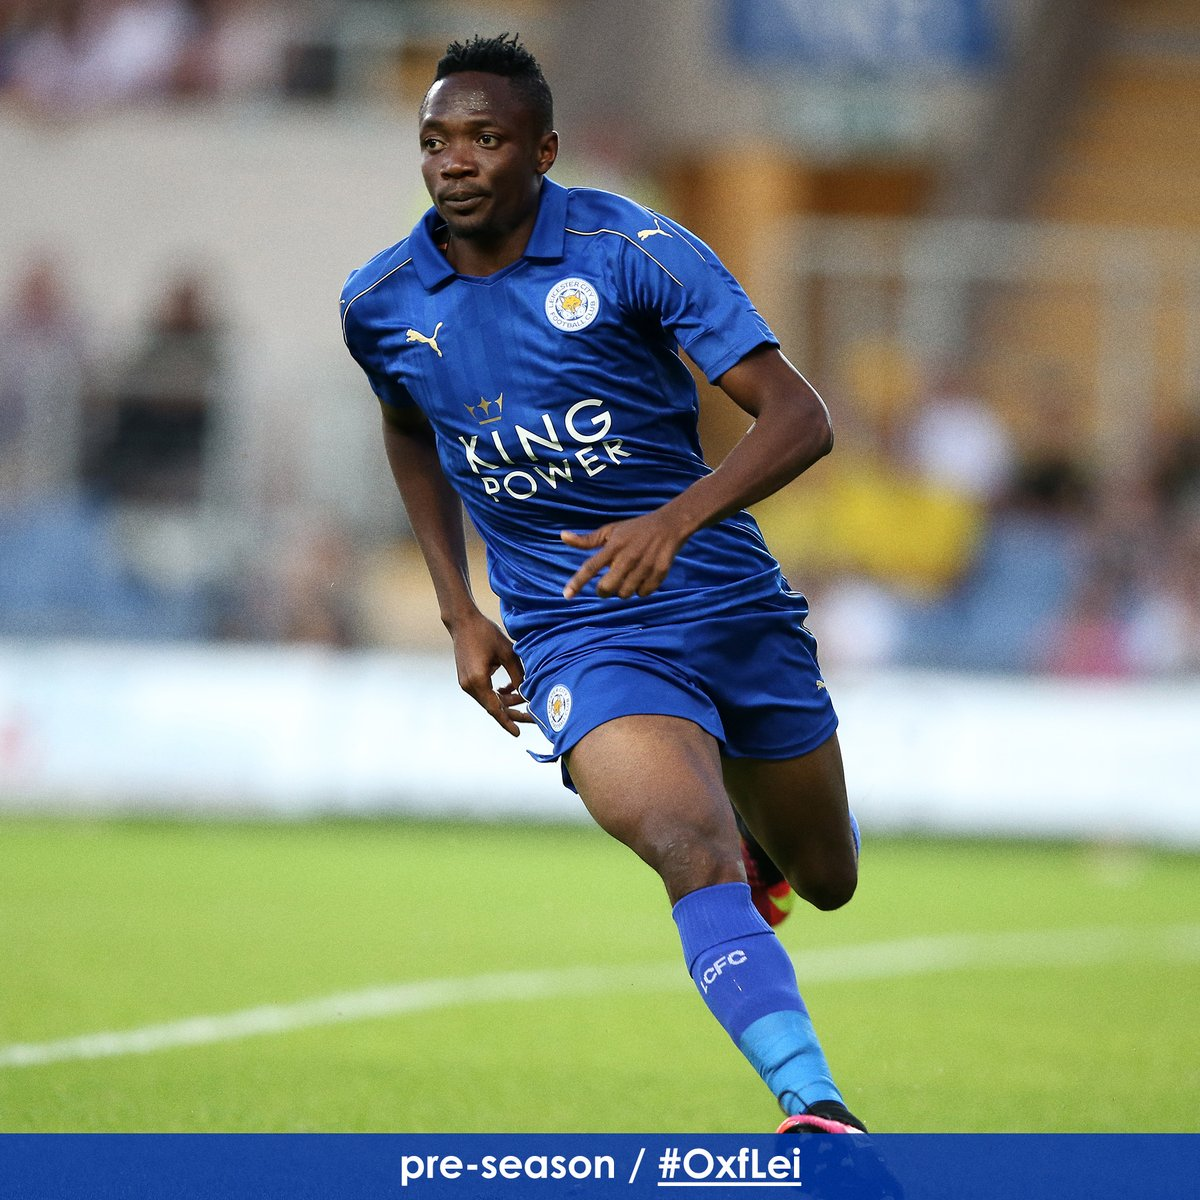 Musa, Kante Miss Out On Leicester's BMW i8 Gift